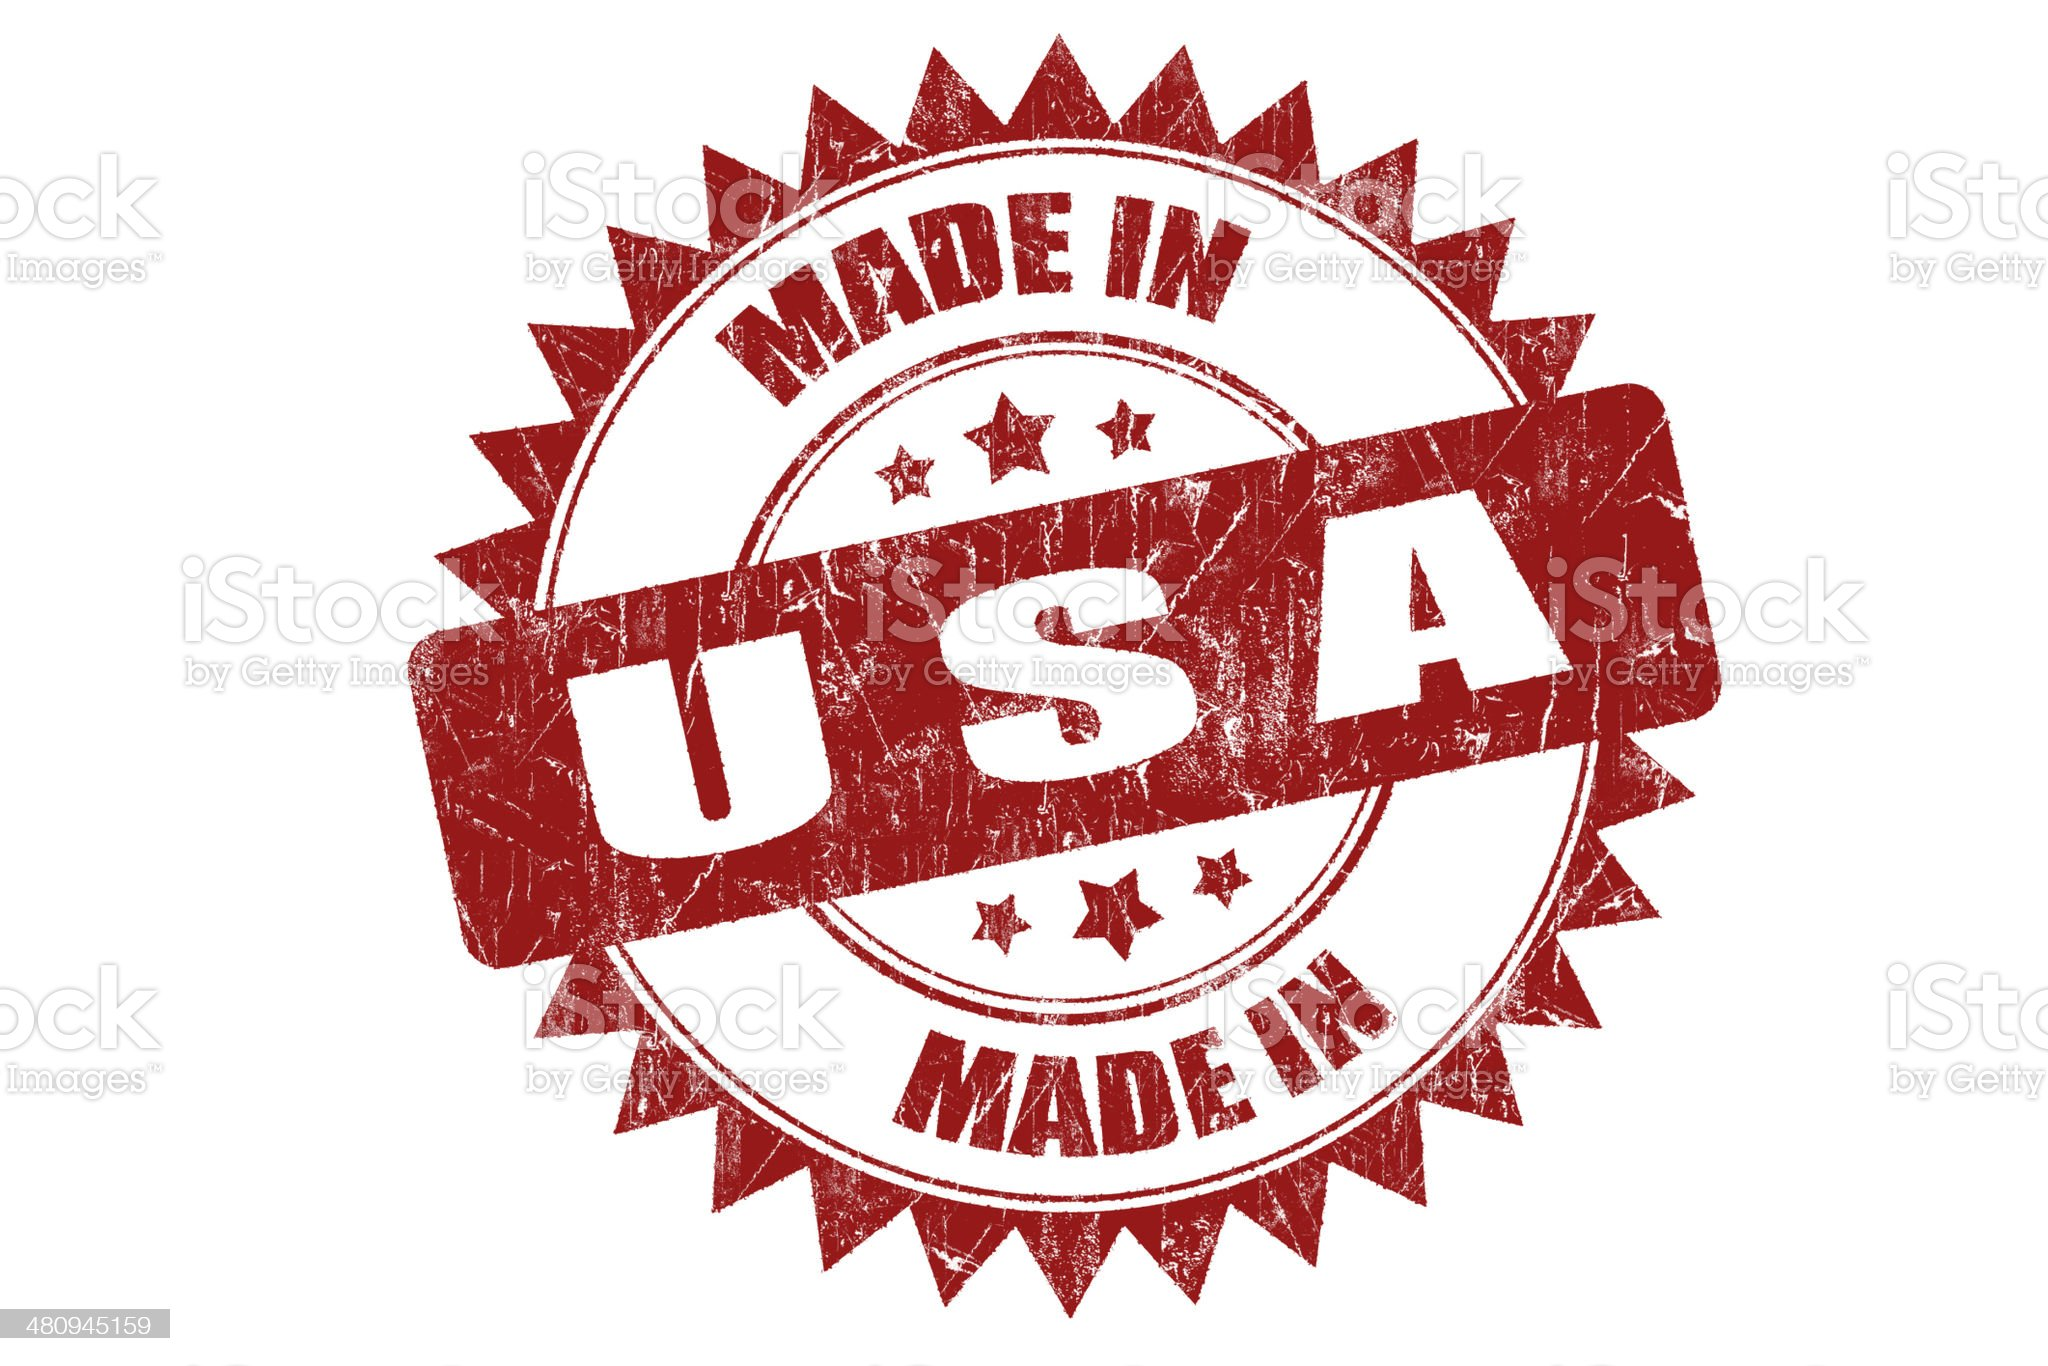 Rubber stamp 'USA' royalty-free stock photo